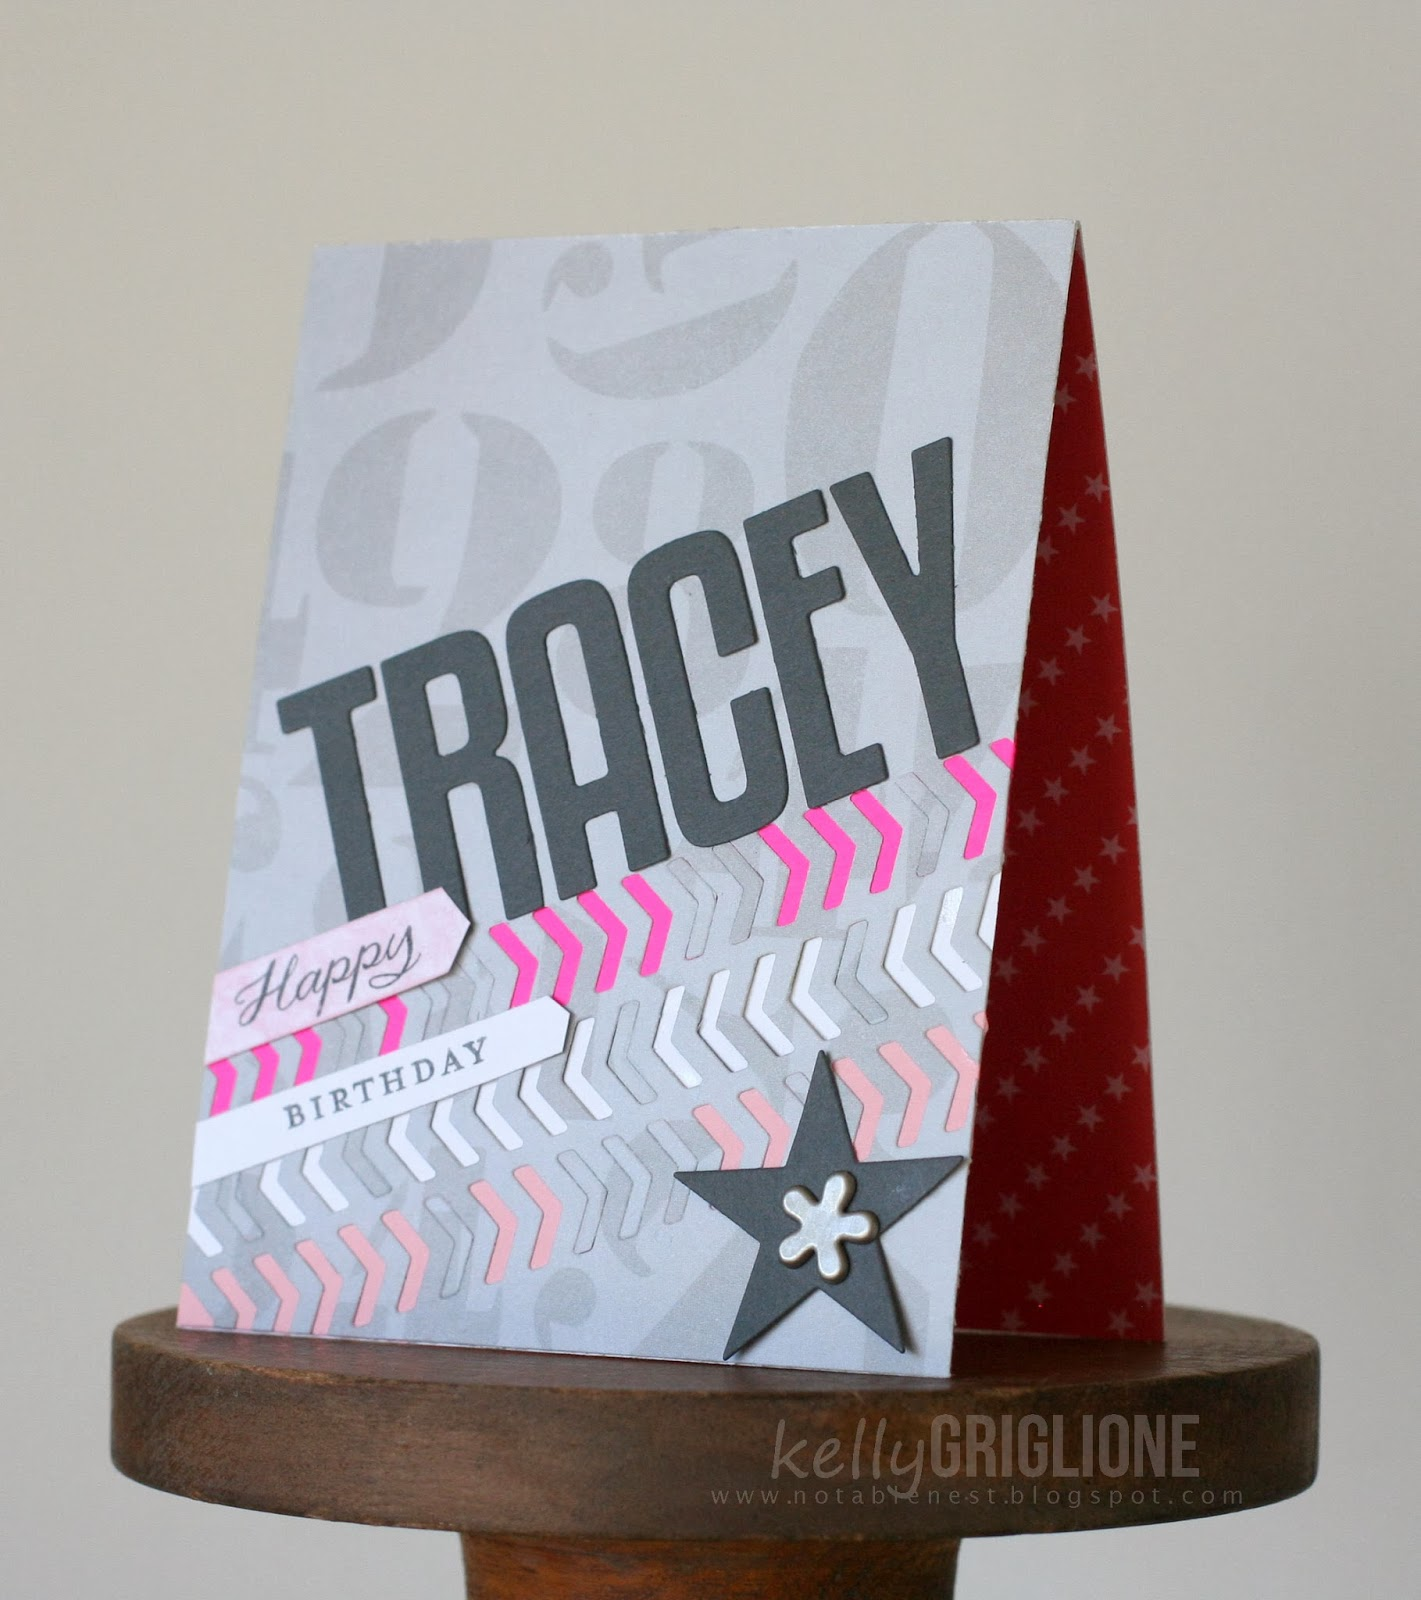 happy birthday tracey images ; Fun+Trendy+Happy+Birthday+Card